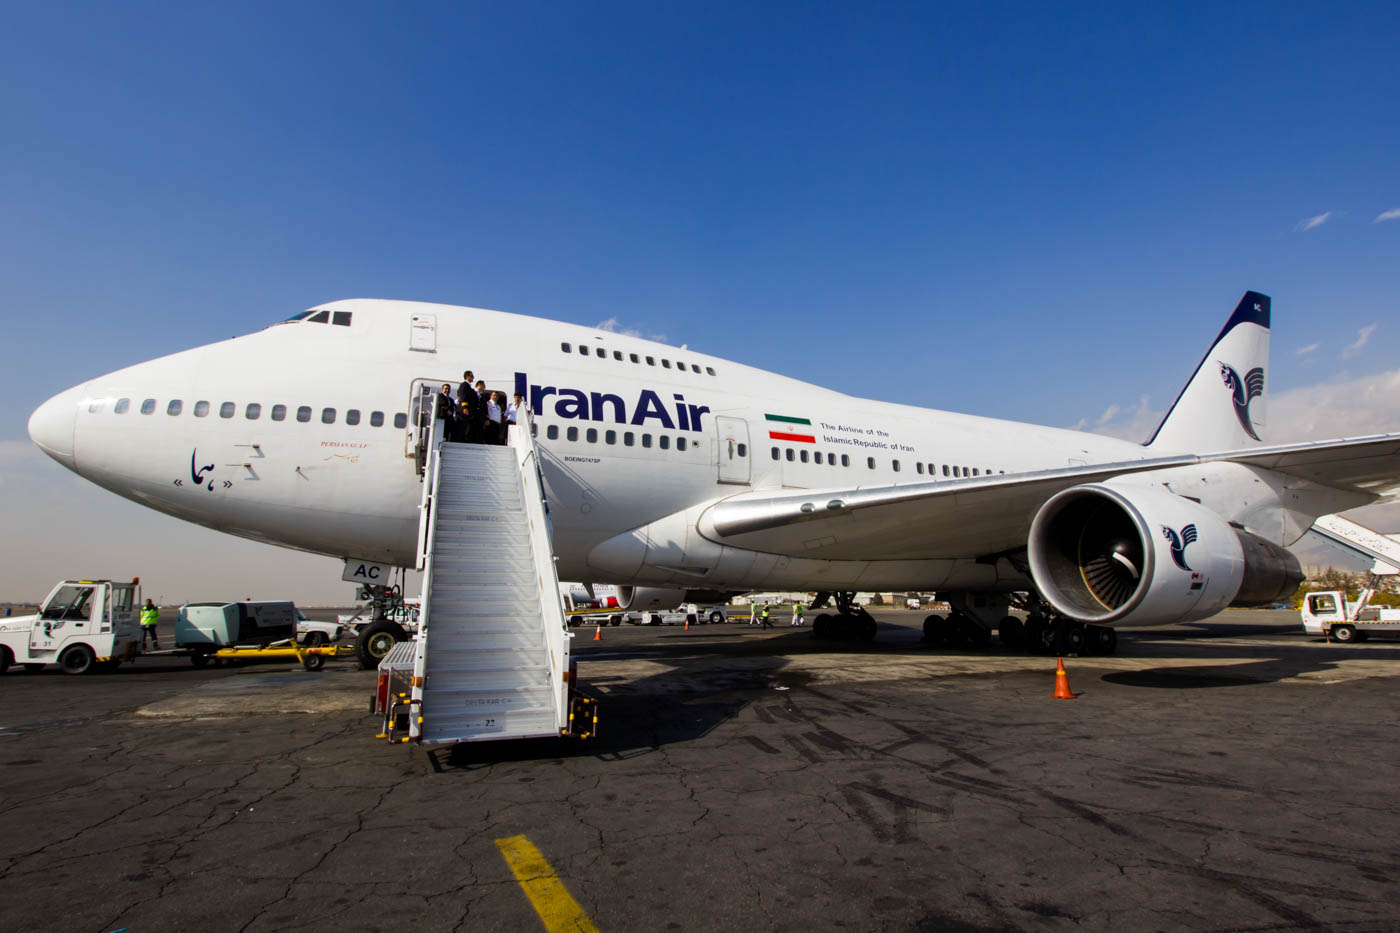 Iran Air Boeing 747SP